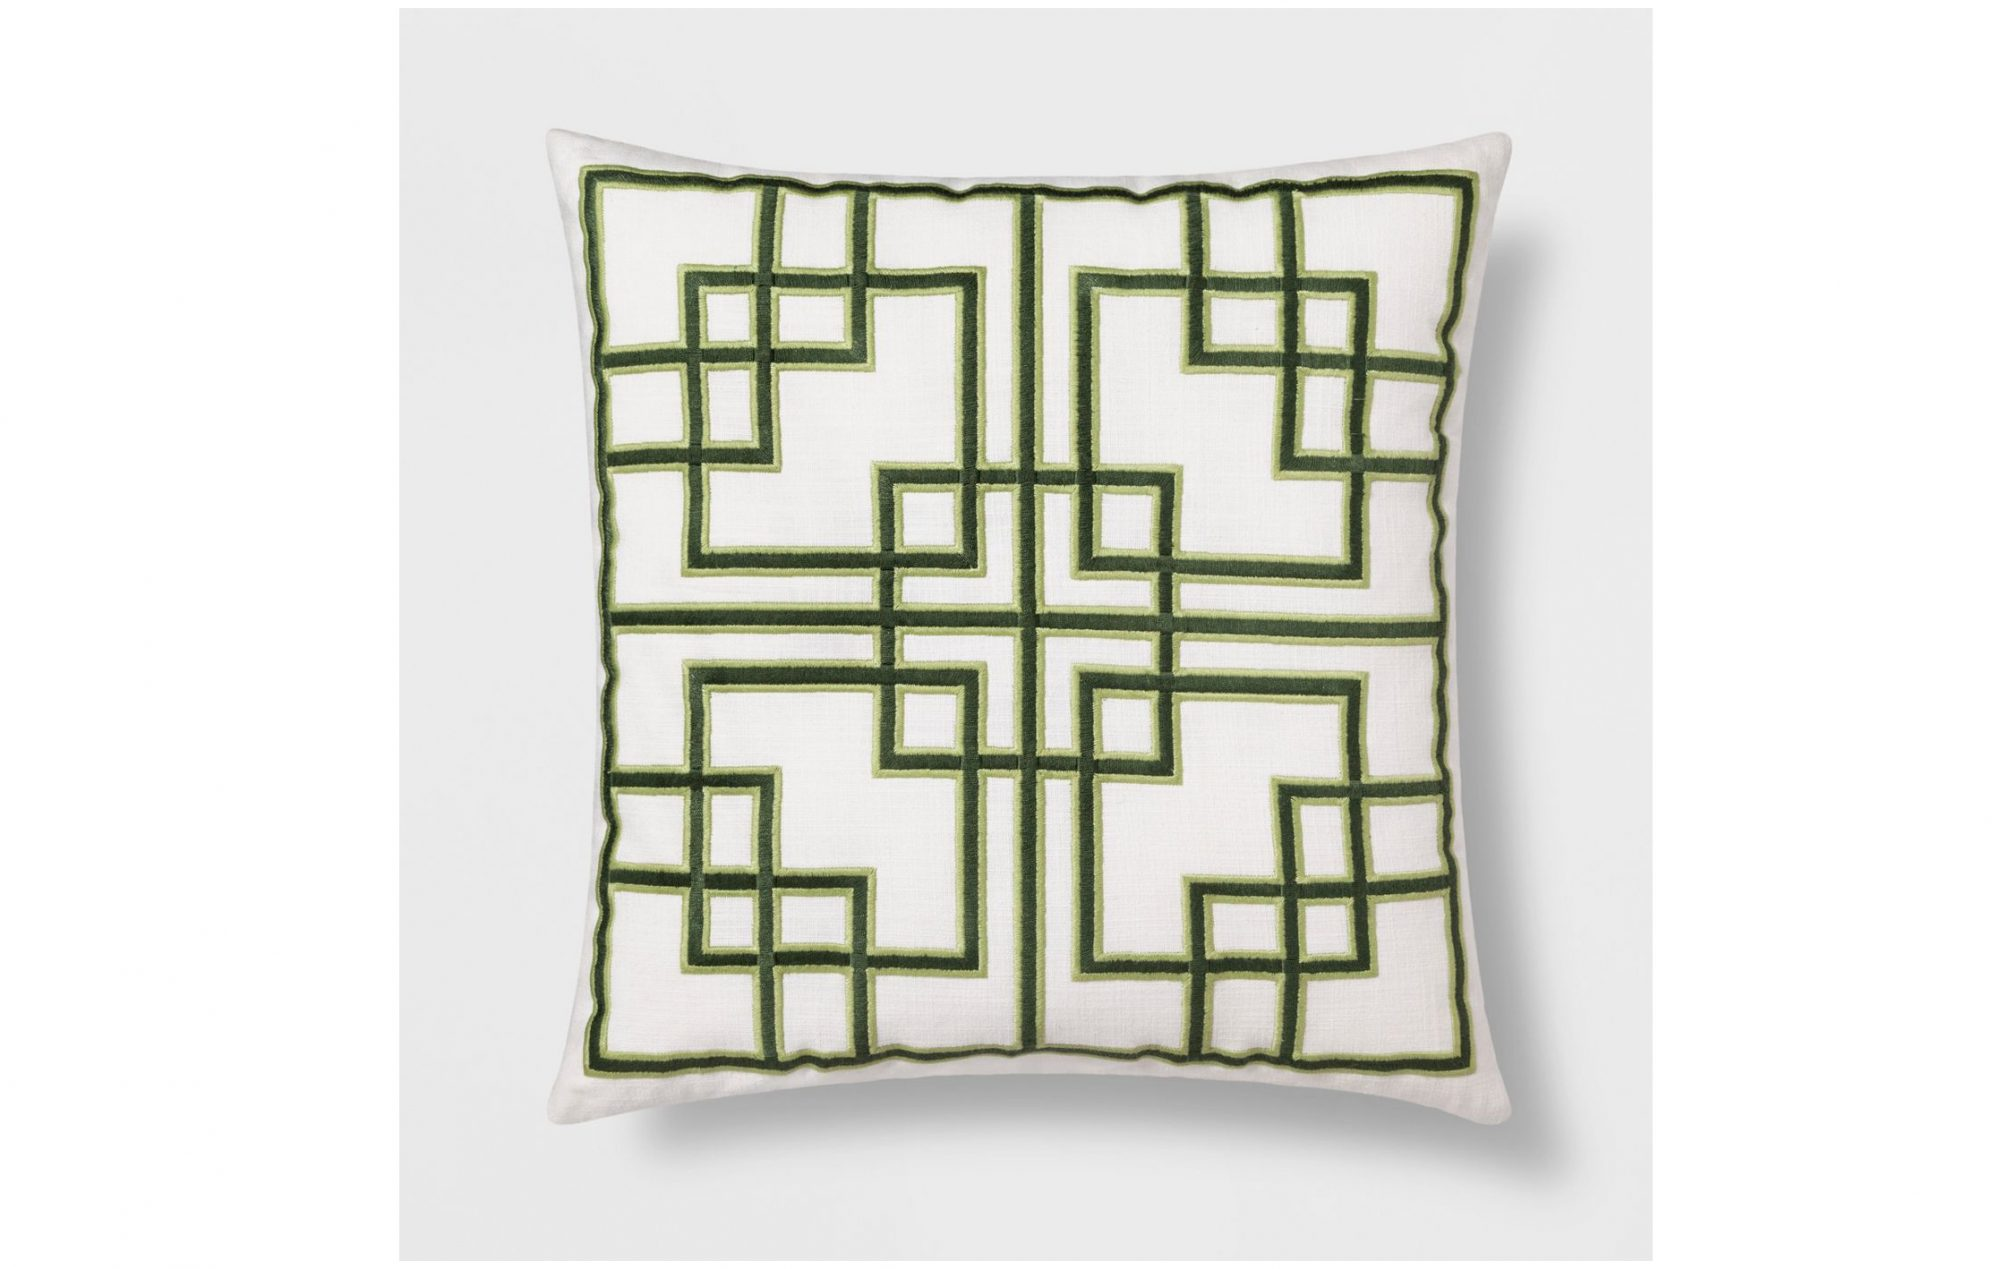 Embroidered Fretwork Square Throw Pillow Green – Threshold